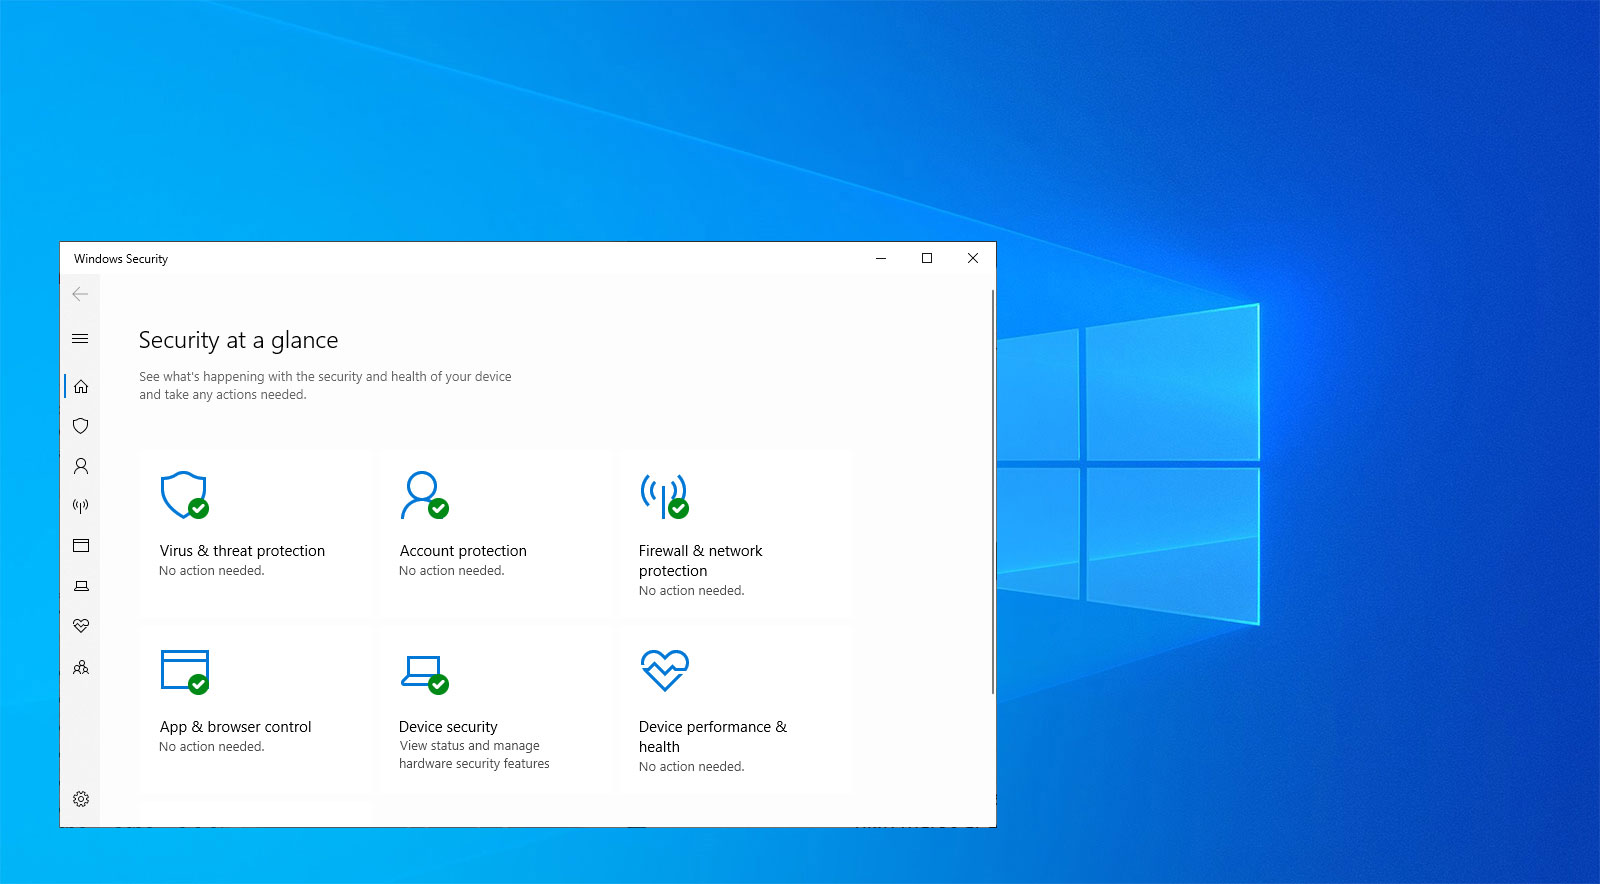 Windows Defender Review 2020.Recent Antivirus Testing Found Windows Defender To Be A Top